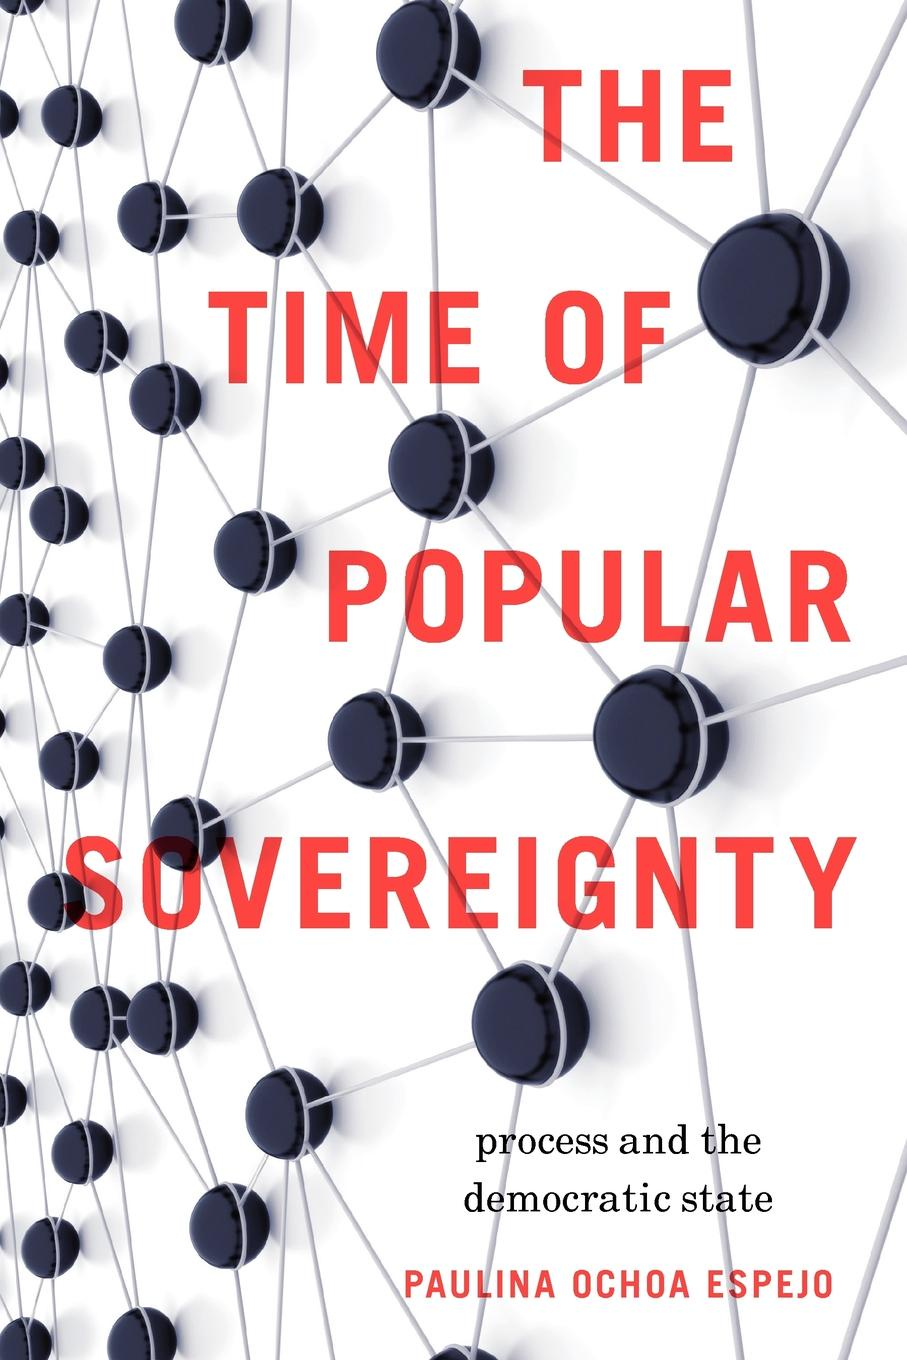 Paulina Ochoa Espejo The Time of Popular Sovereignty. Process and the Democratic State sergey okulov the ultimate question the theory ofeverything